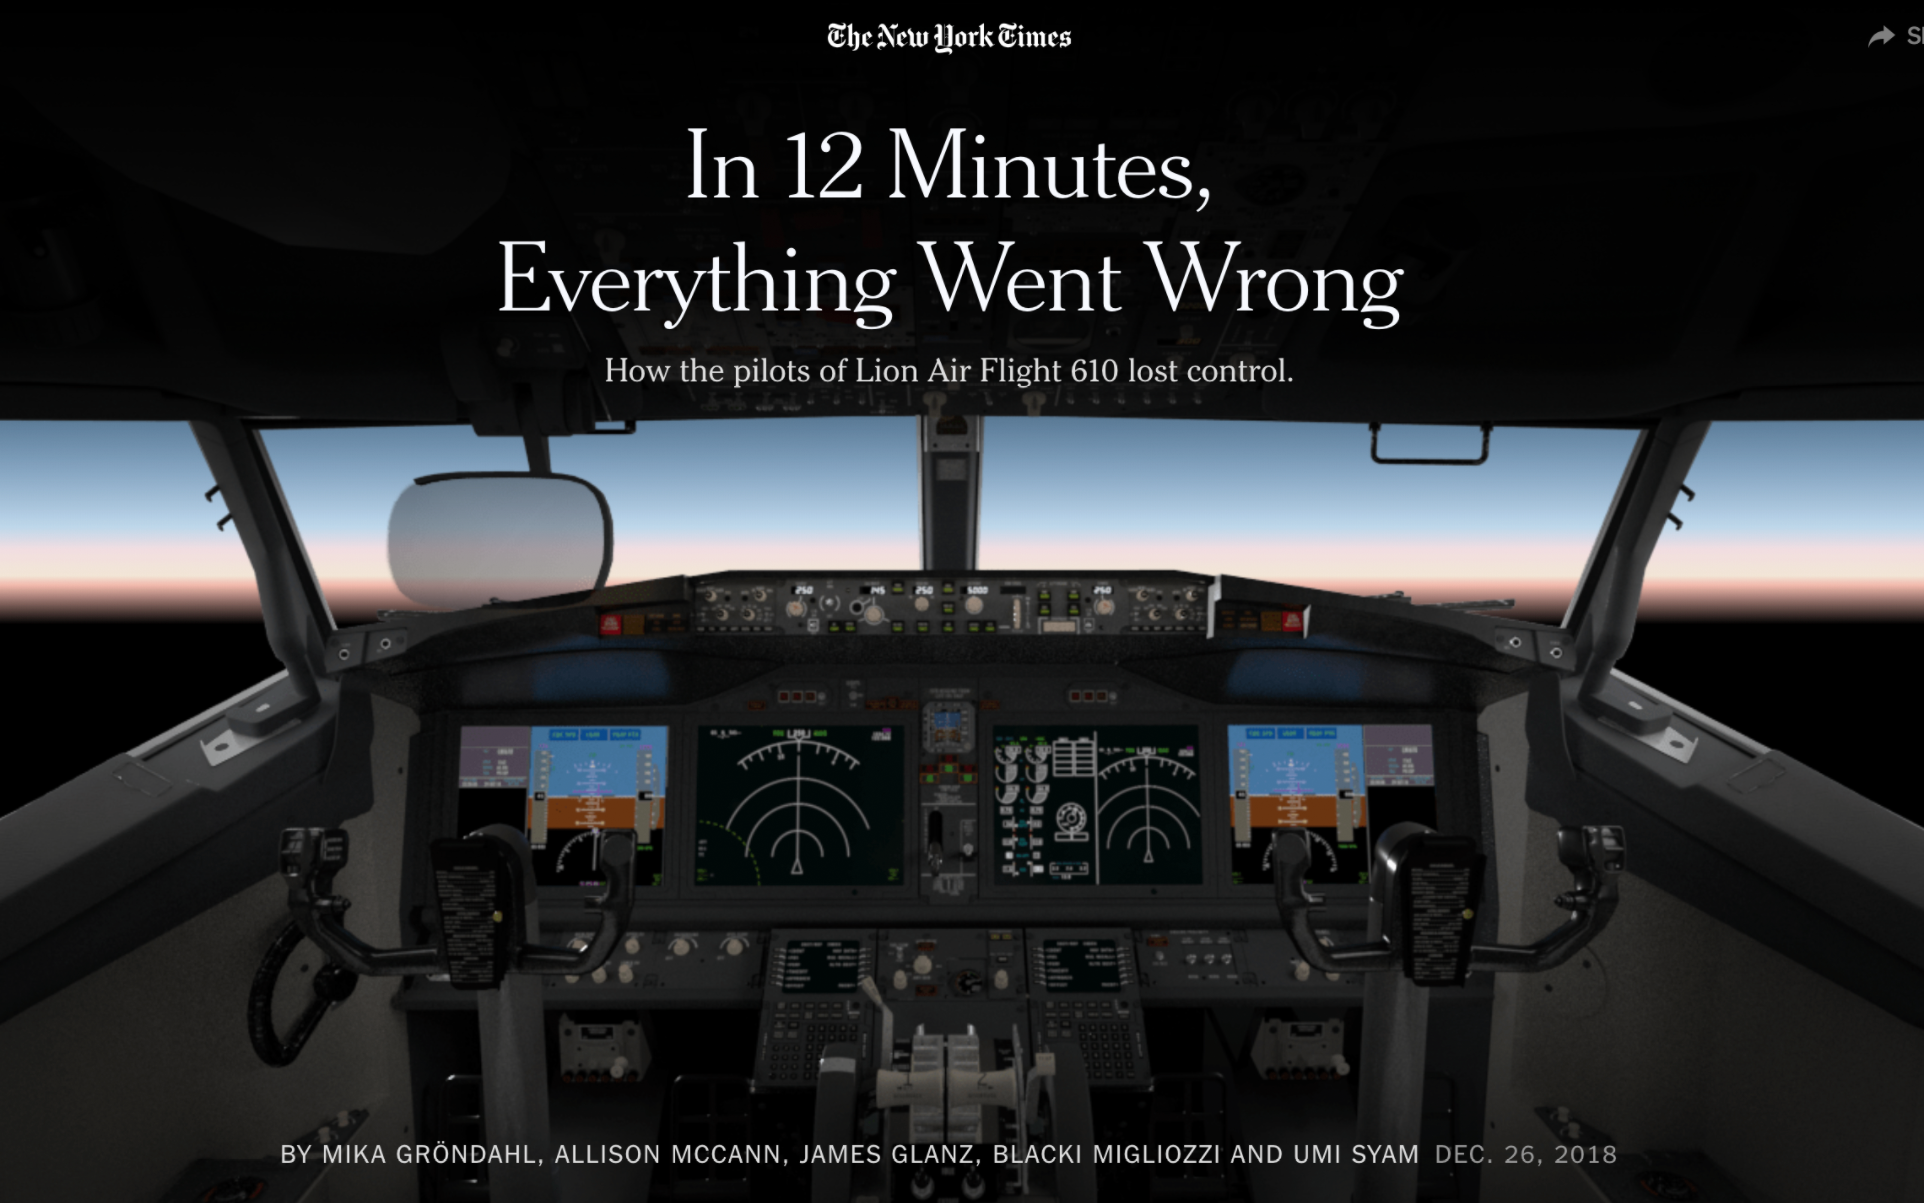 https://www.nytimes.com/interactive/2018/12/26/world/asia/lion-air-crash-12-minutes.html